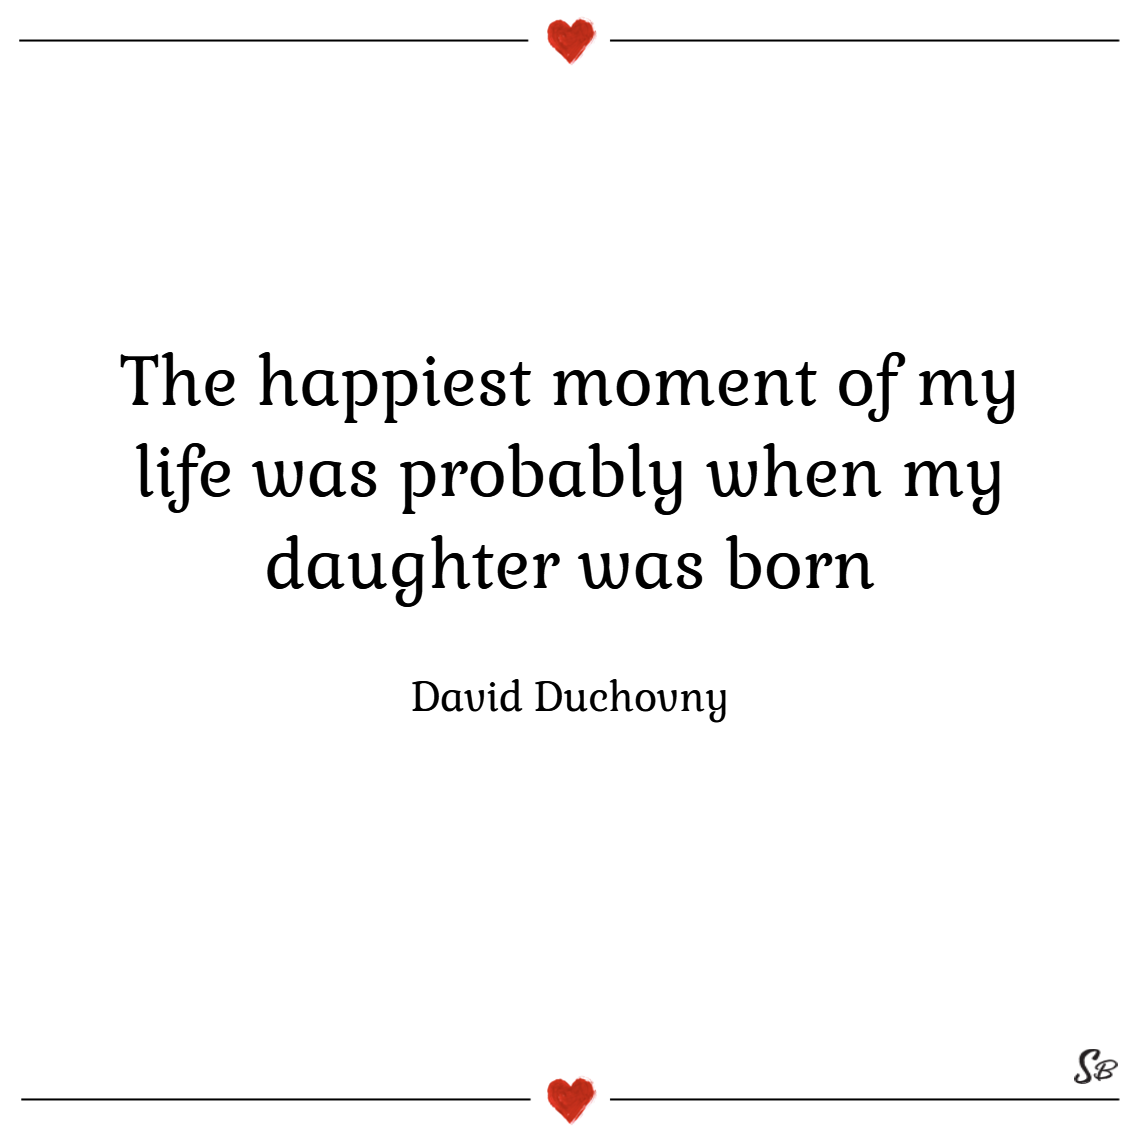 The happiest moment of my life was probably when my daughter was born. – david duchovny